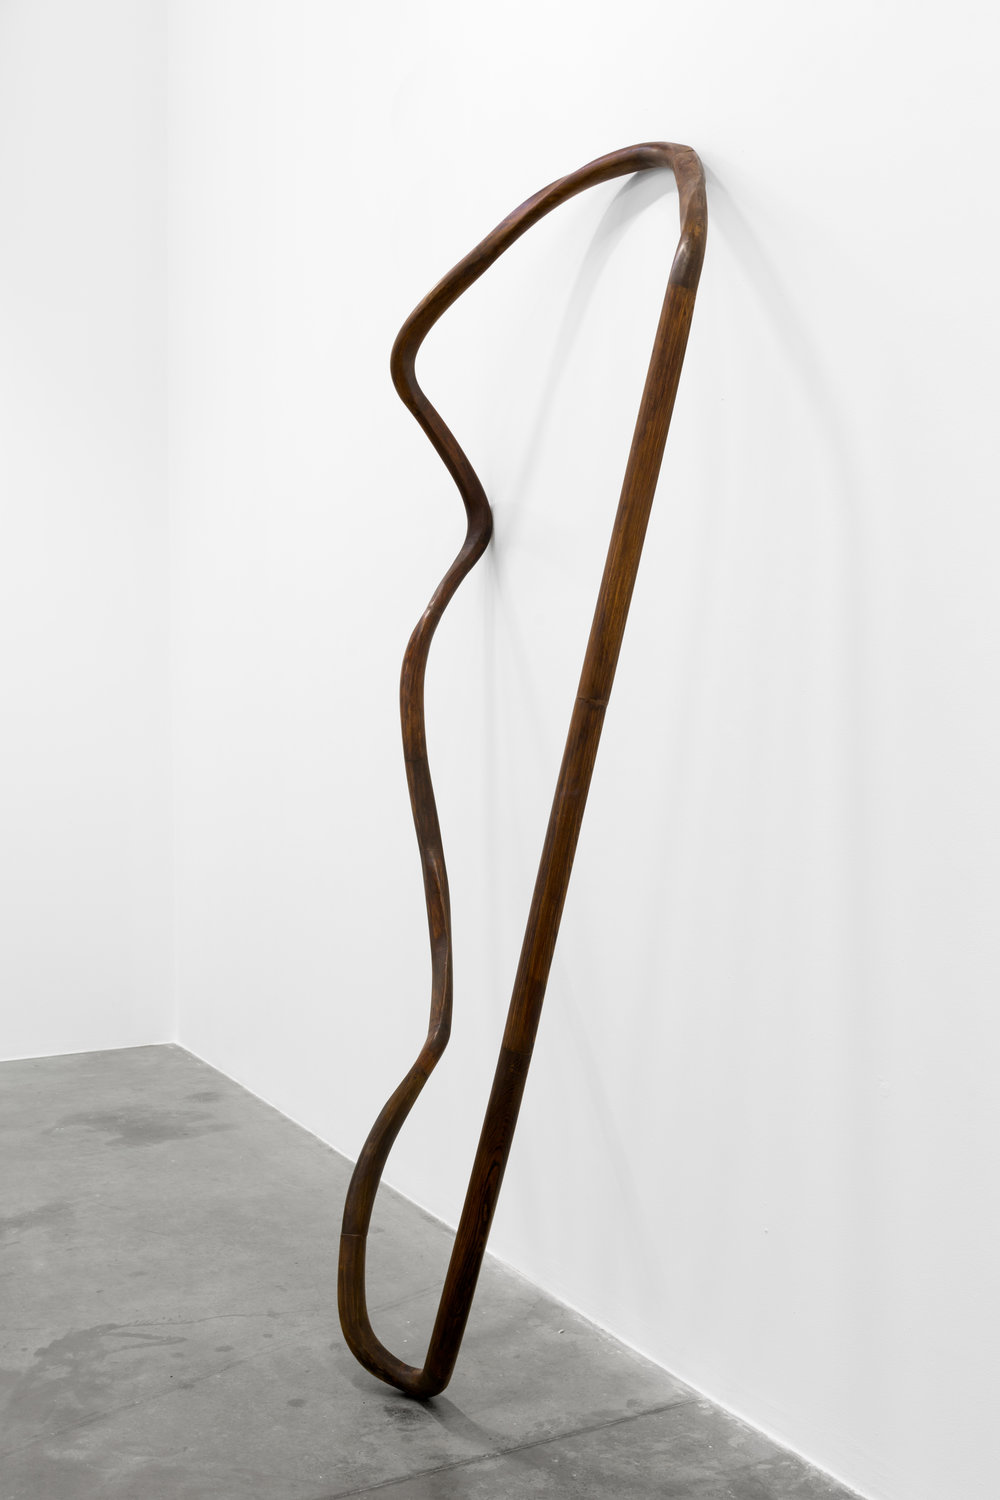 Nika Neelova, Lemniscate V (installation view), 2017, two flights of stairs and hardwood handrails, 320 x 100 x 50 cm. Courtesy of Artist and Green Art Gallery Dubai